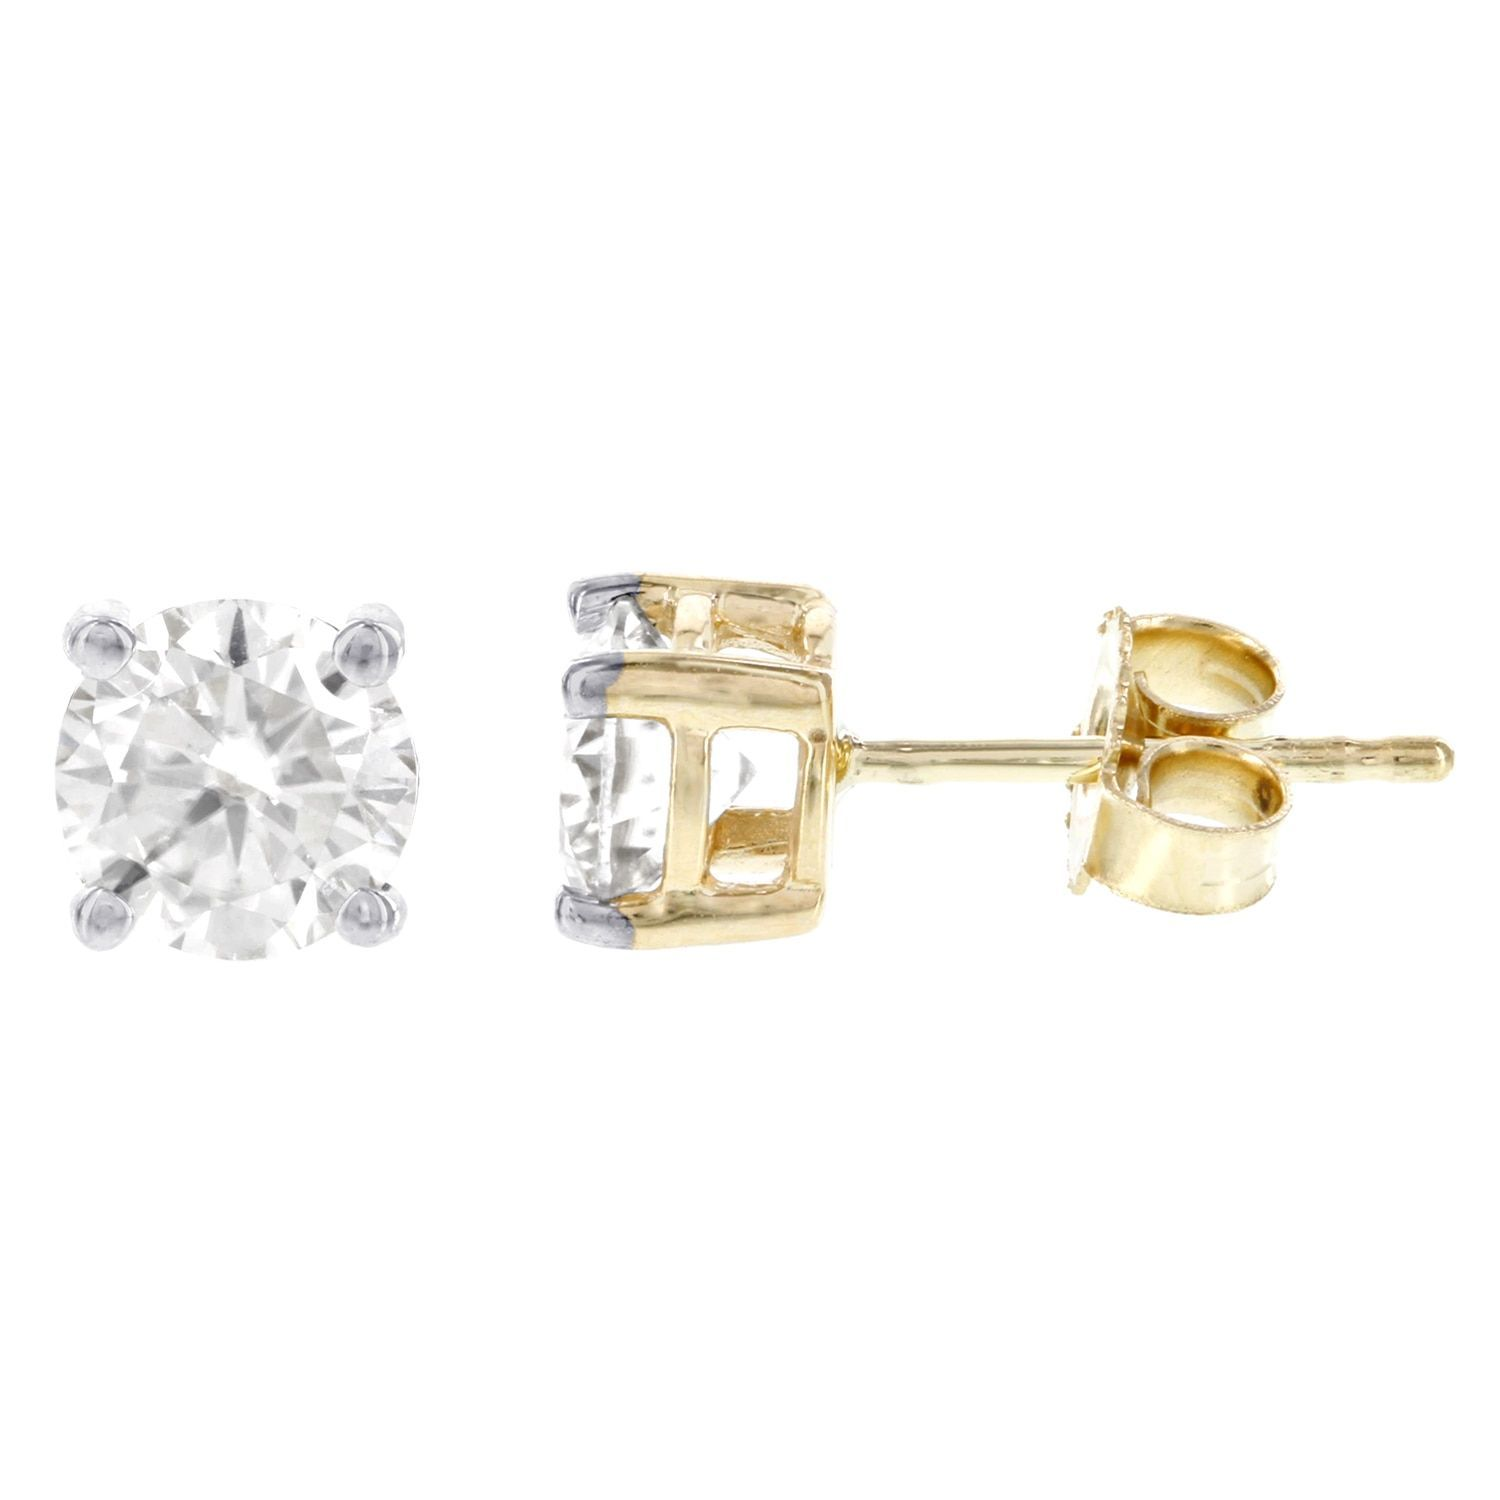 earrings diamond studs poshclassymom colvard ideas moissanite gift stud charles valentines day and